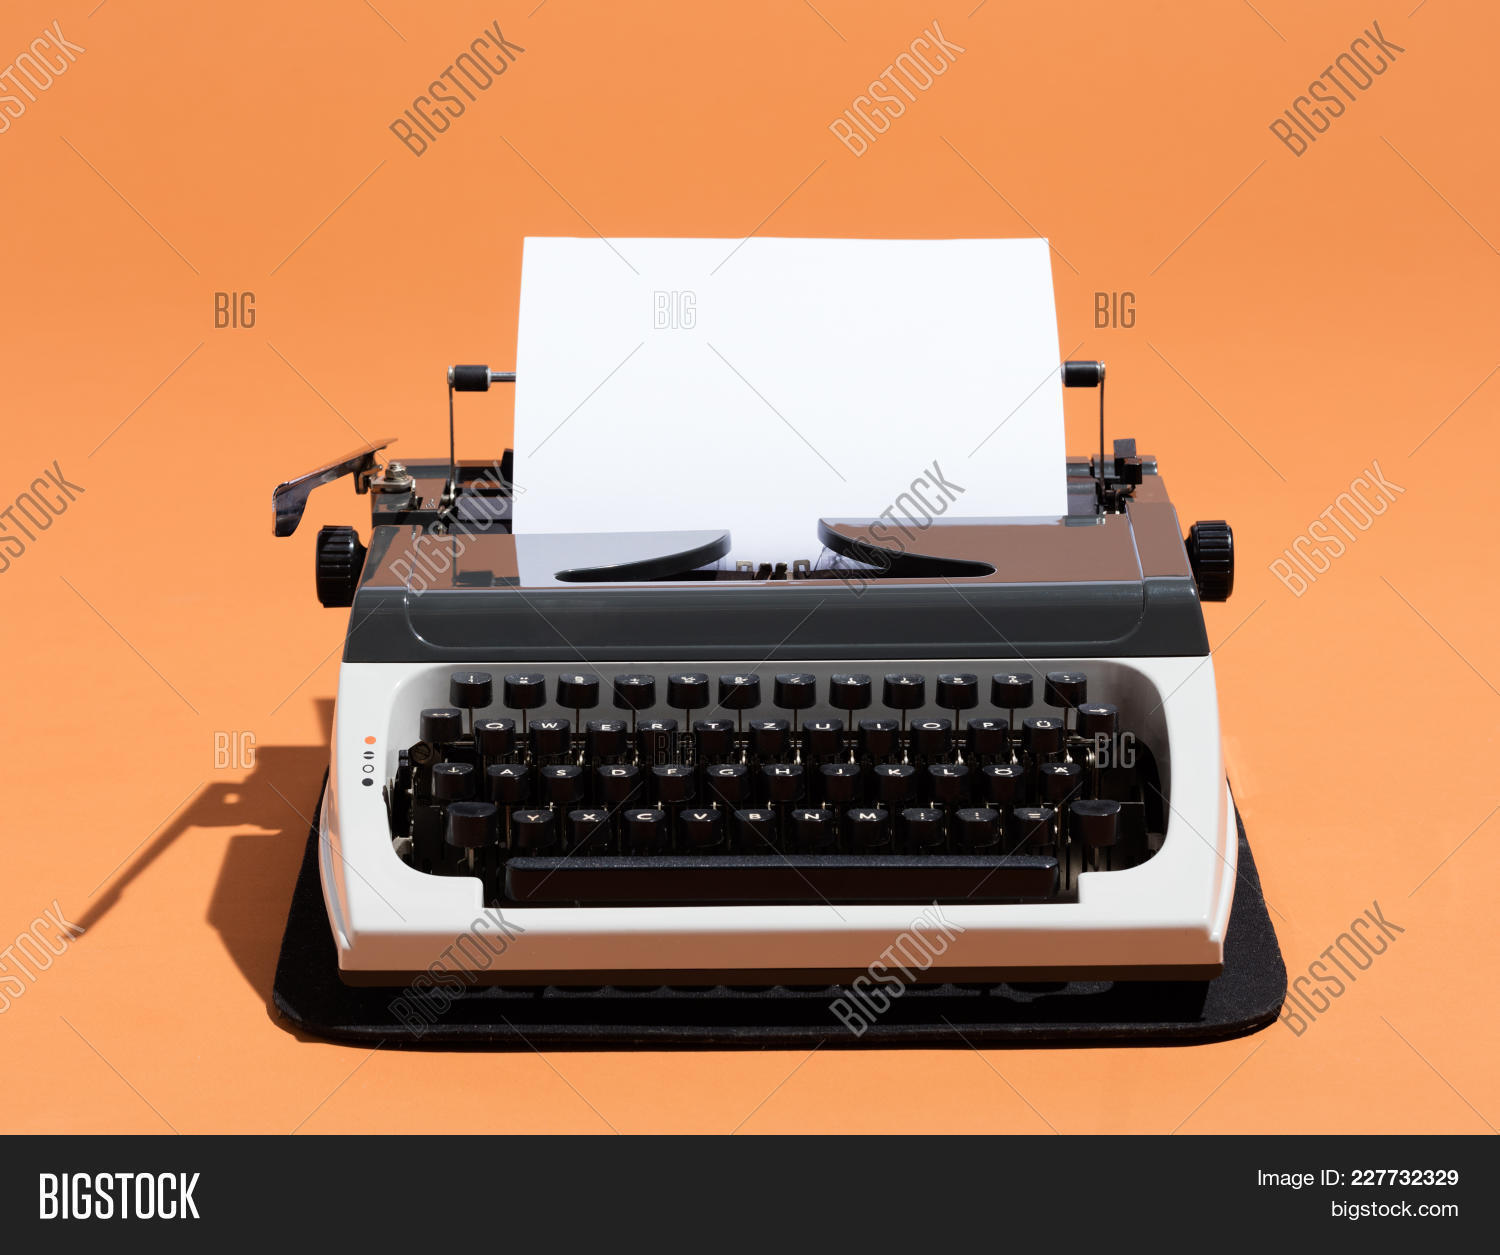 antique,author,blank,classic,concept,correspondence,editor,equipment,idea,journalism,journalist,keyboard,letter,machine,mechanic,message,nostalgia,office,old,oldschool,orange,page,paper,retro,secretary,story,type,typewriter,typist,vintage,work,write,writer